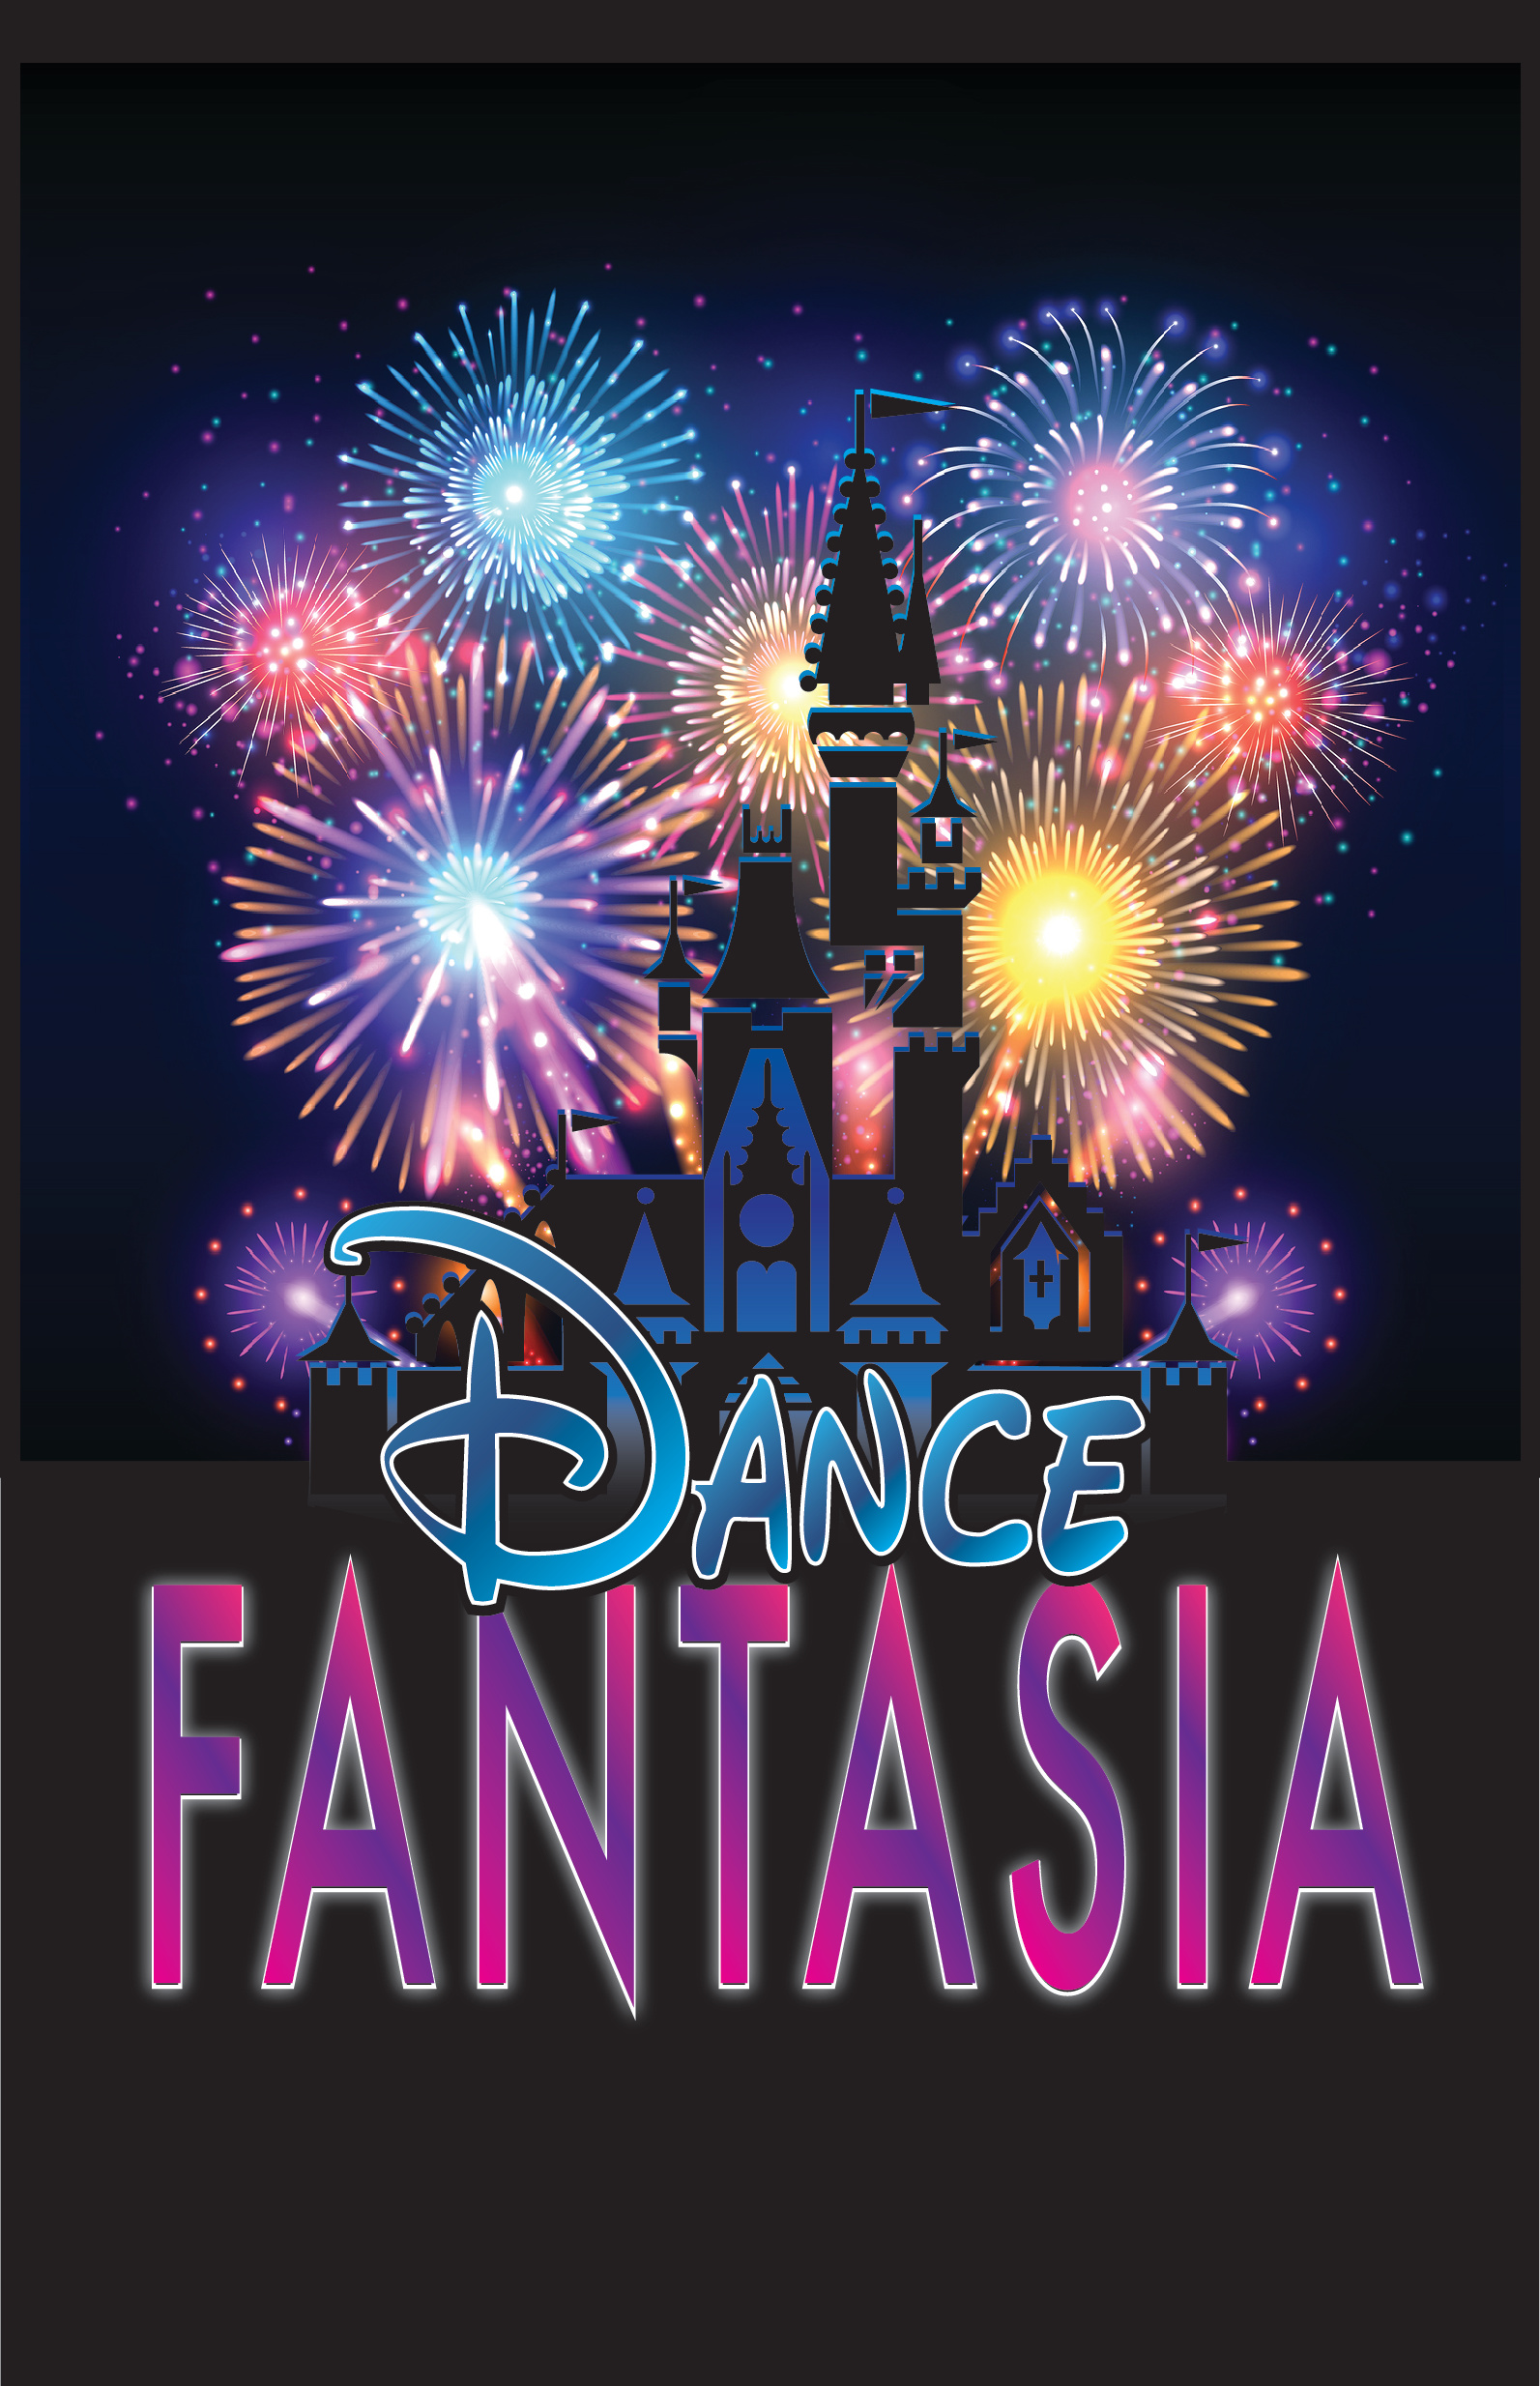 Fantasia program cover